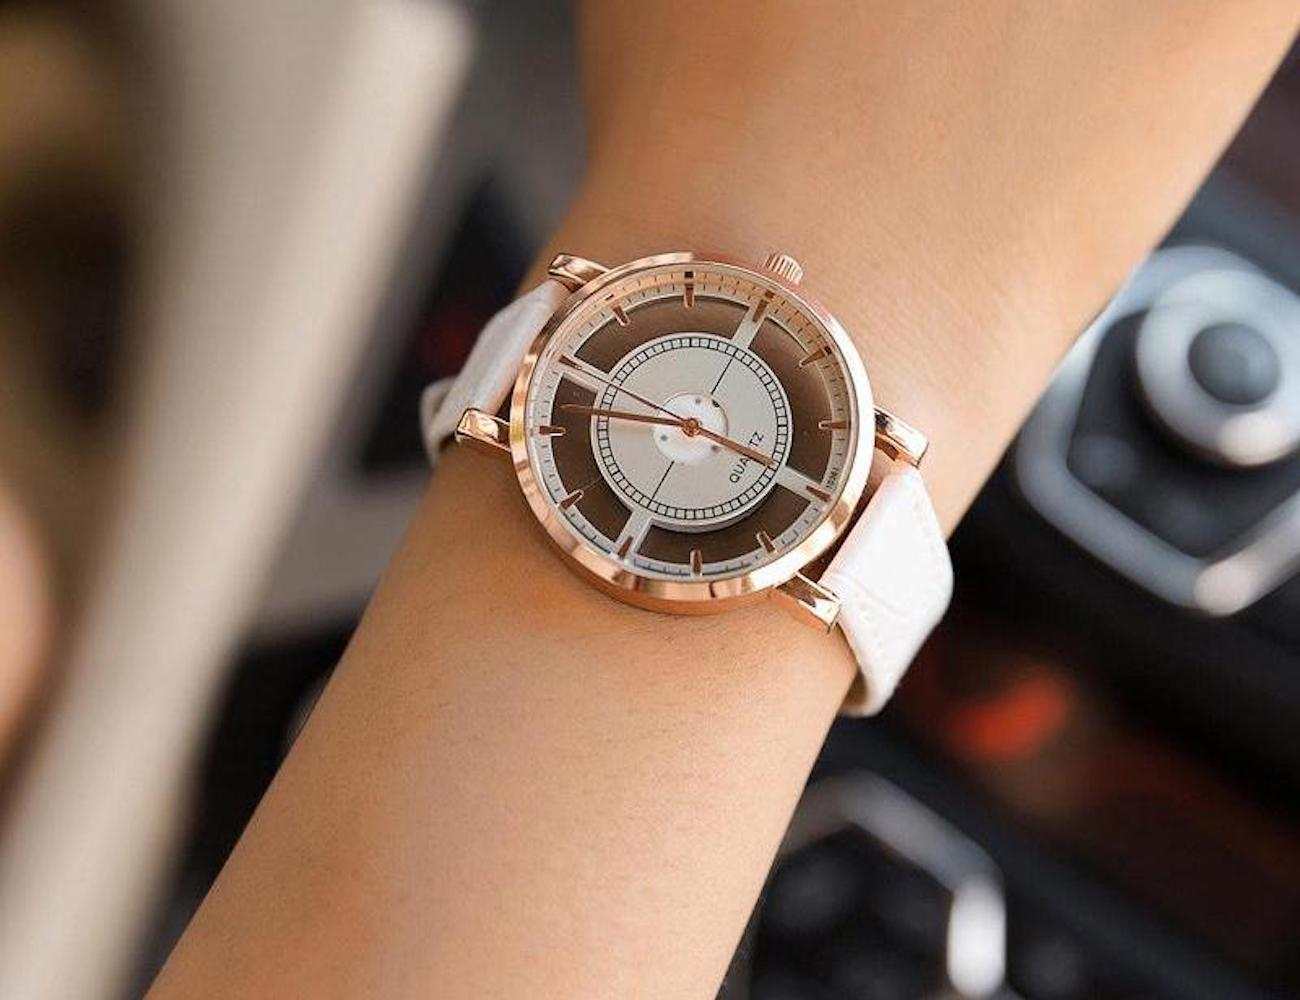 Luxury Women's Watch » Gadget Flow